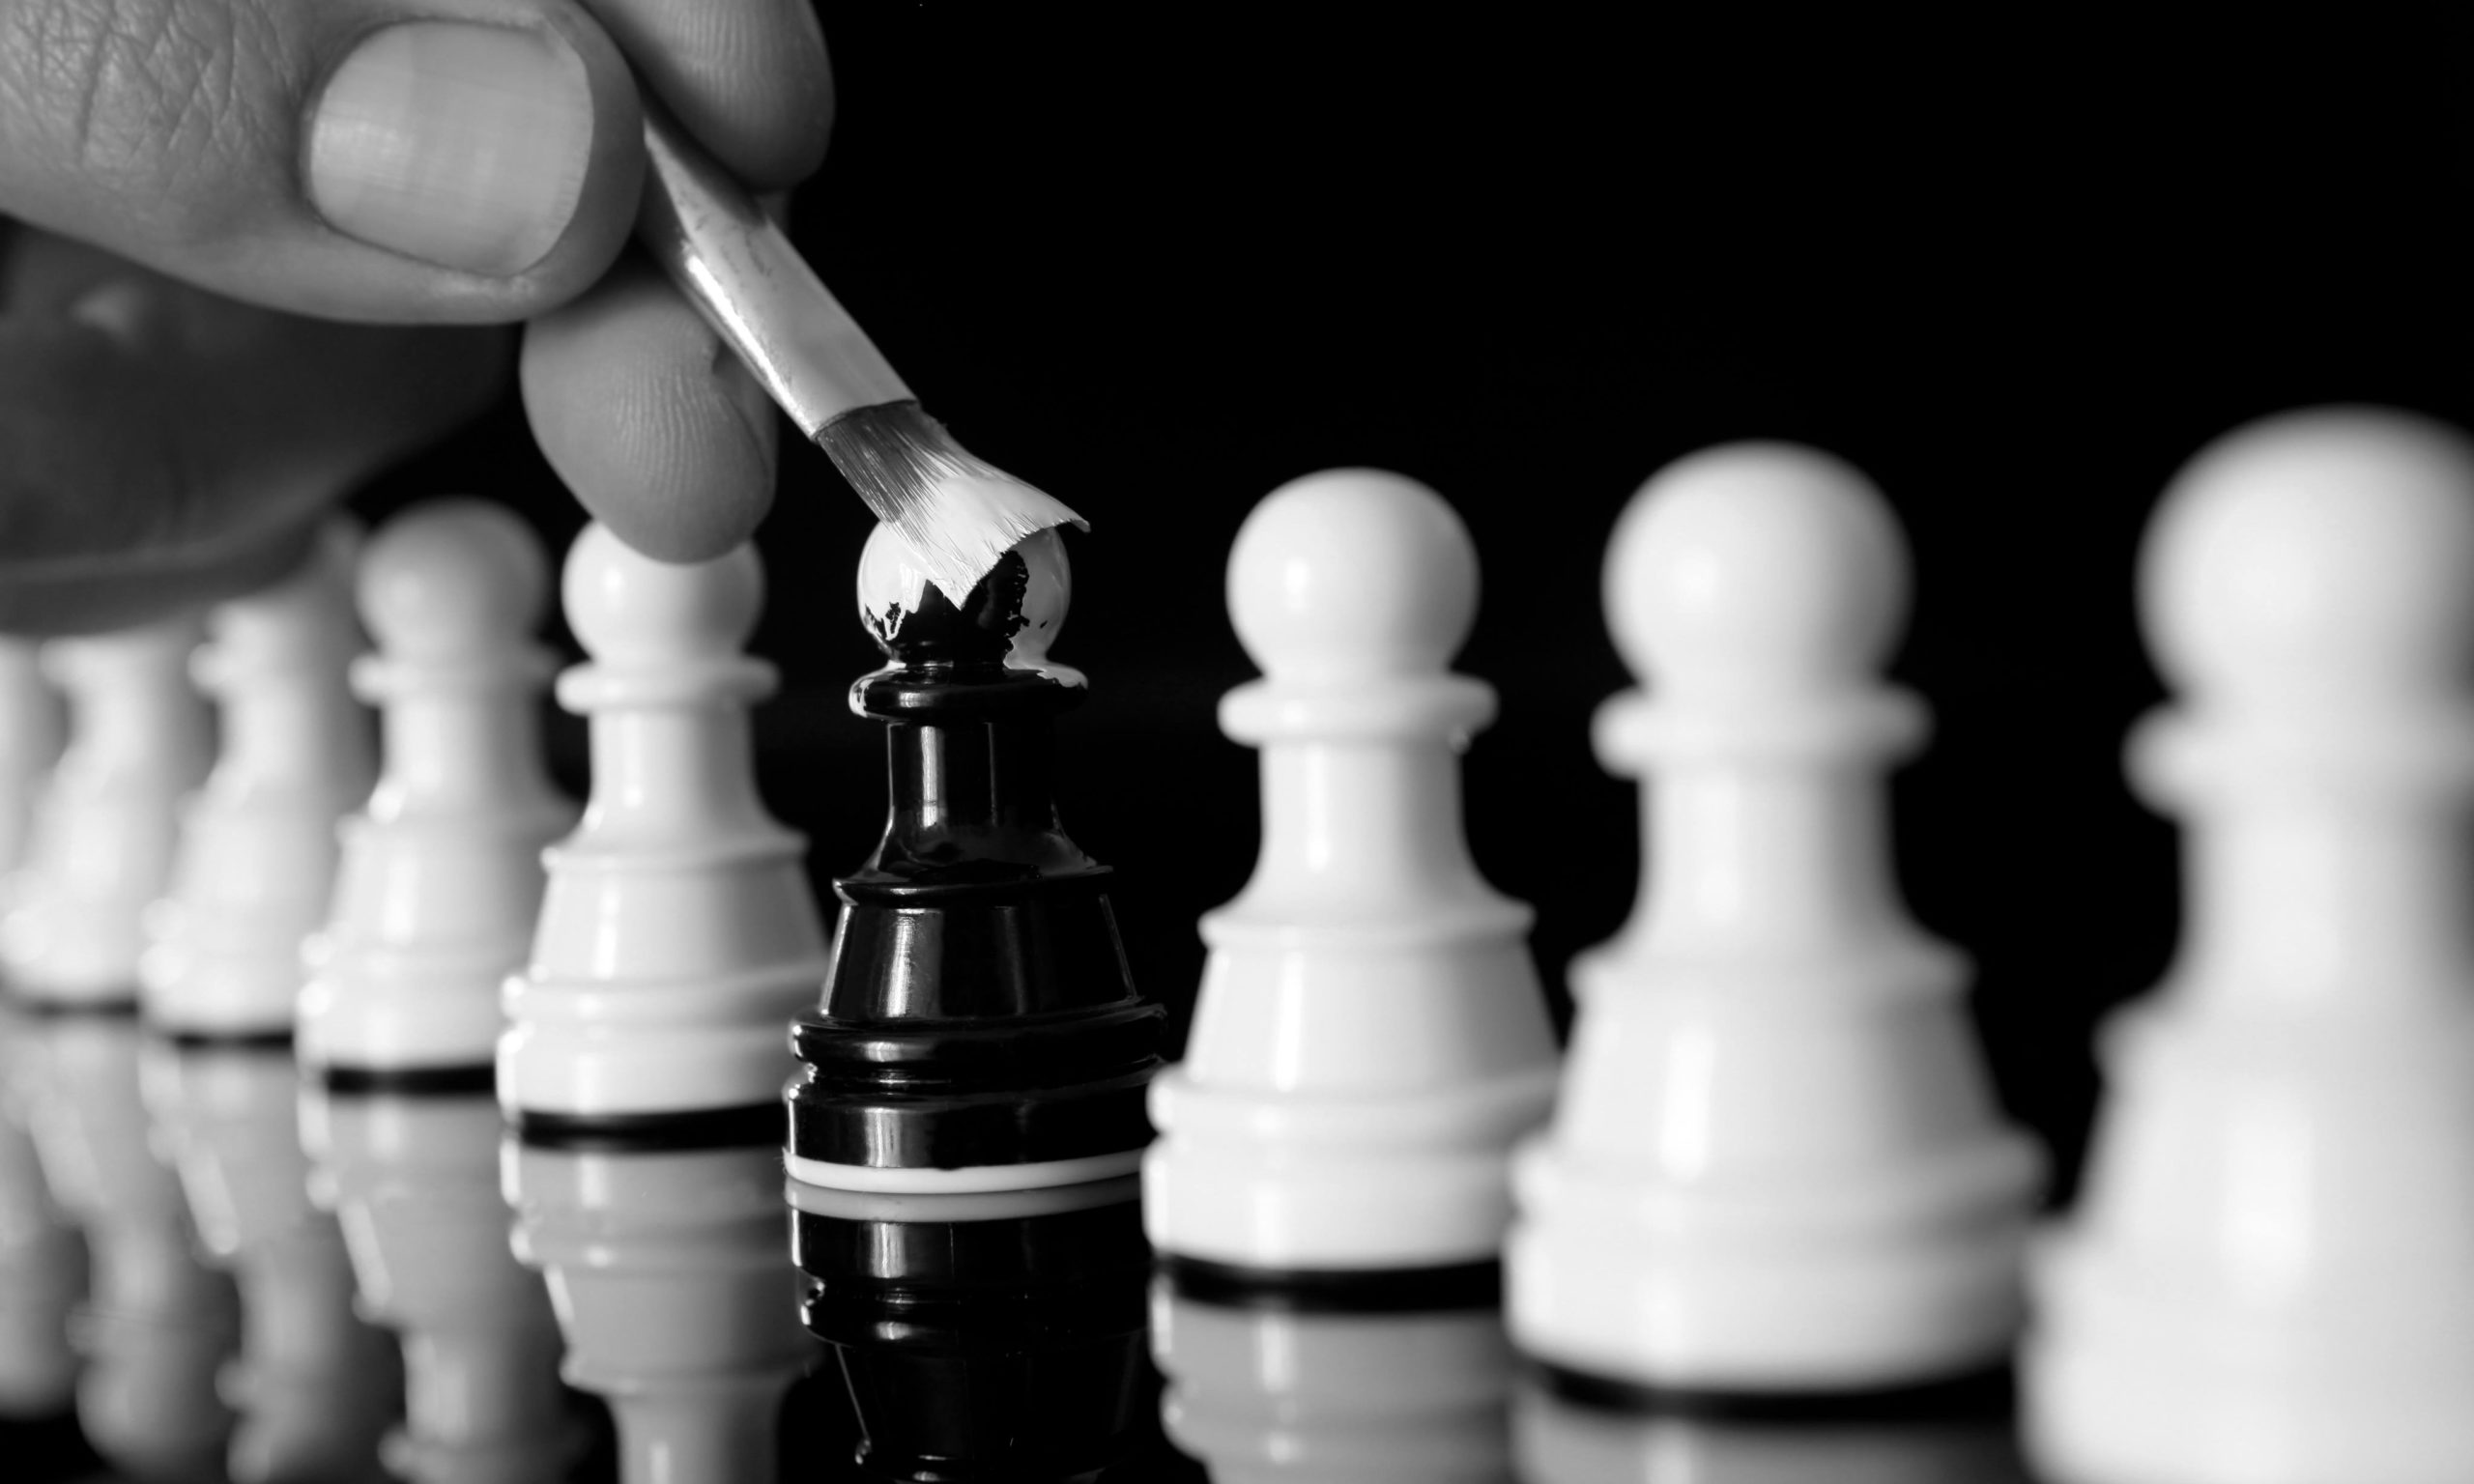 Amidst a line of uniformly white chess pieces, a single black chess piece is carefully painted white.